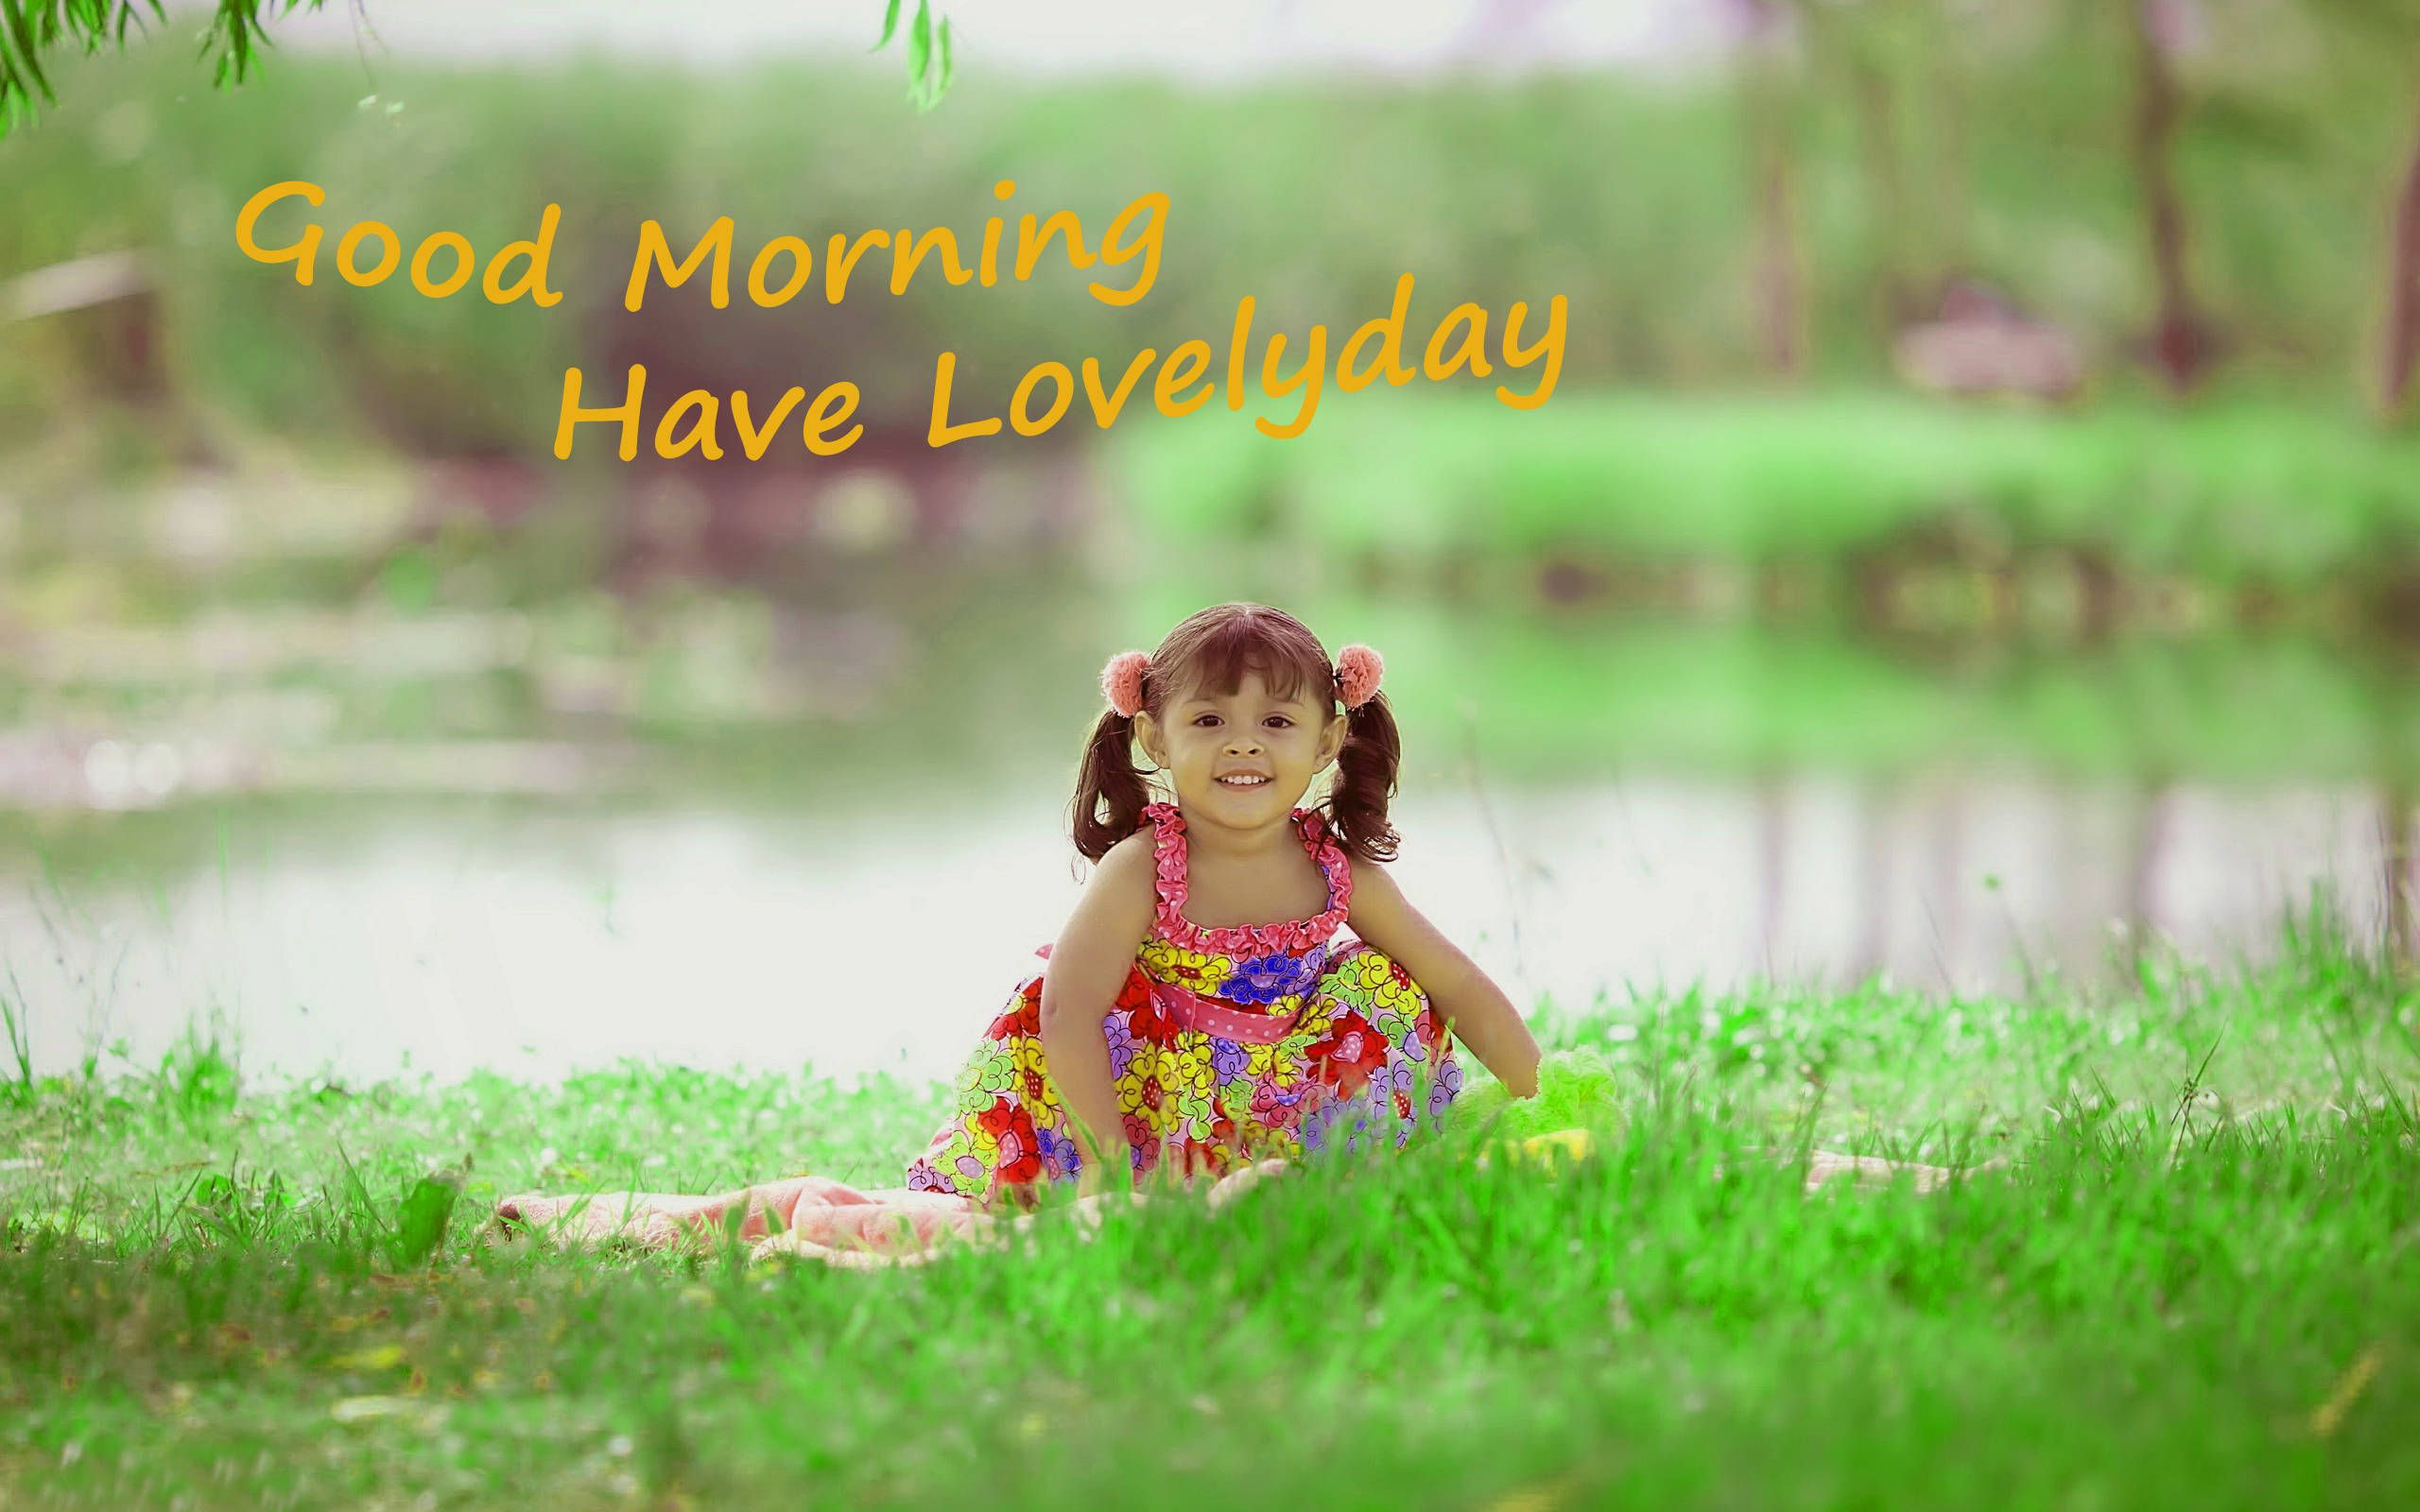 Hd wallpaper upload - Good Morning Hd Wallpaper With Quotes In Hindi